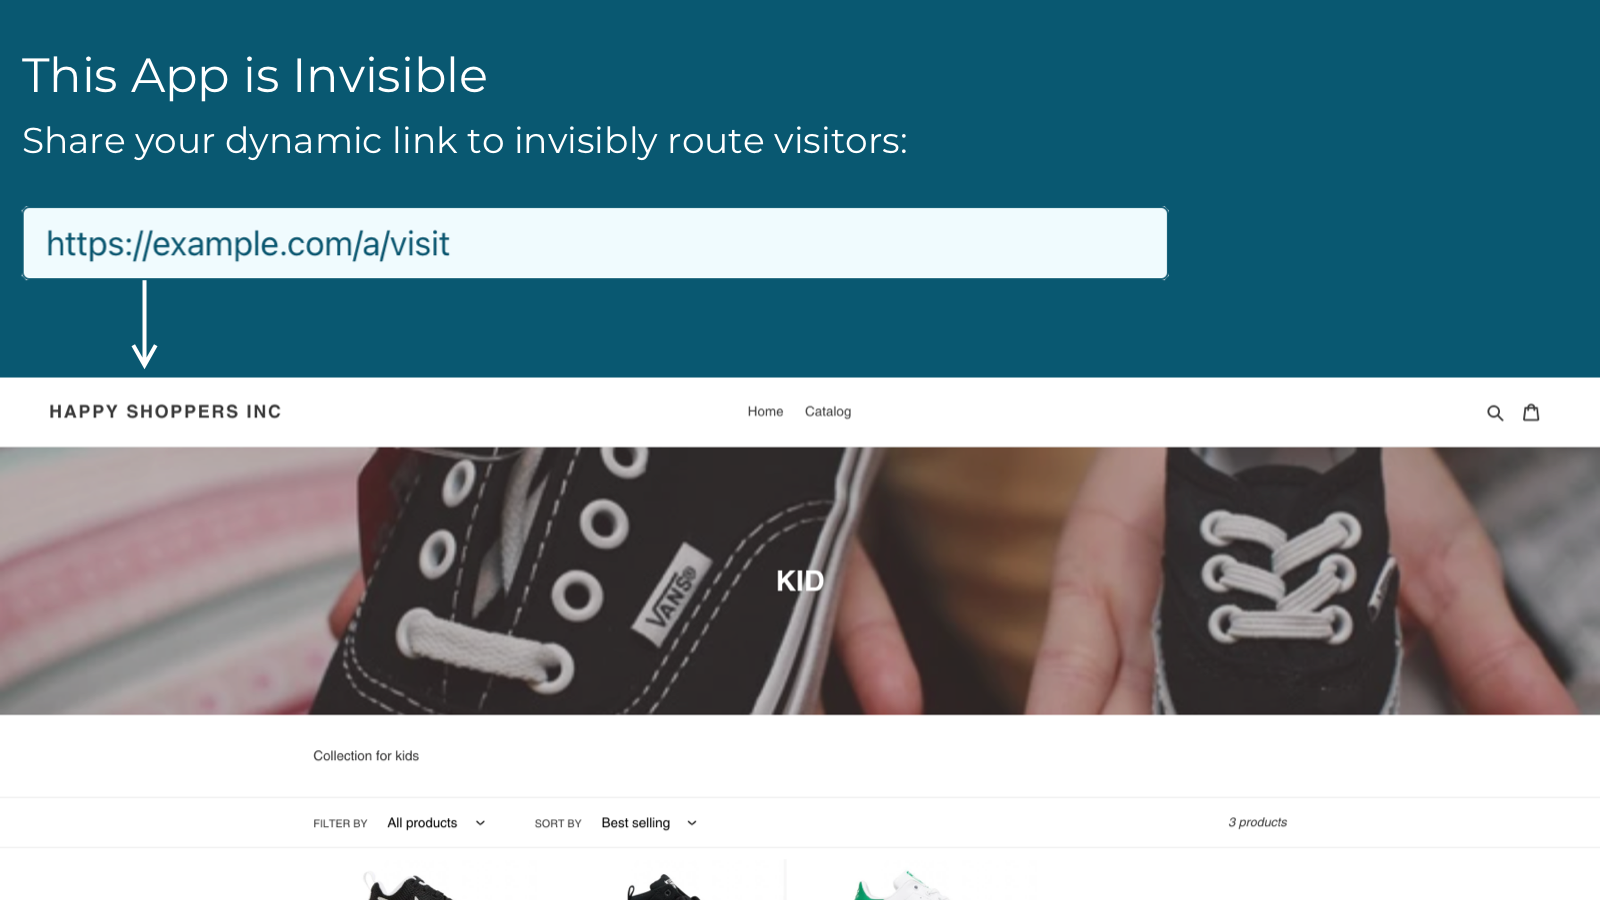 The link invisibly routes visitors to a recommended collection